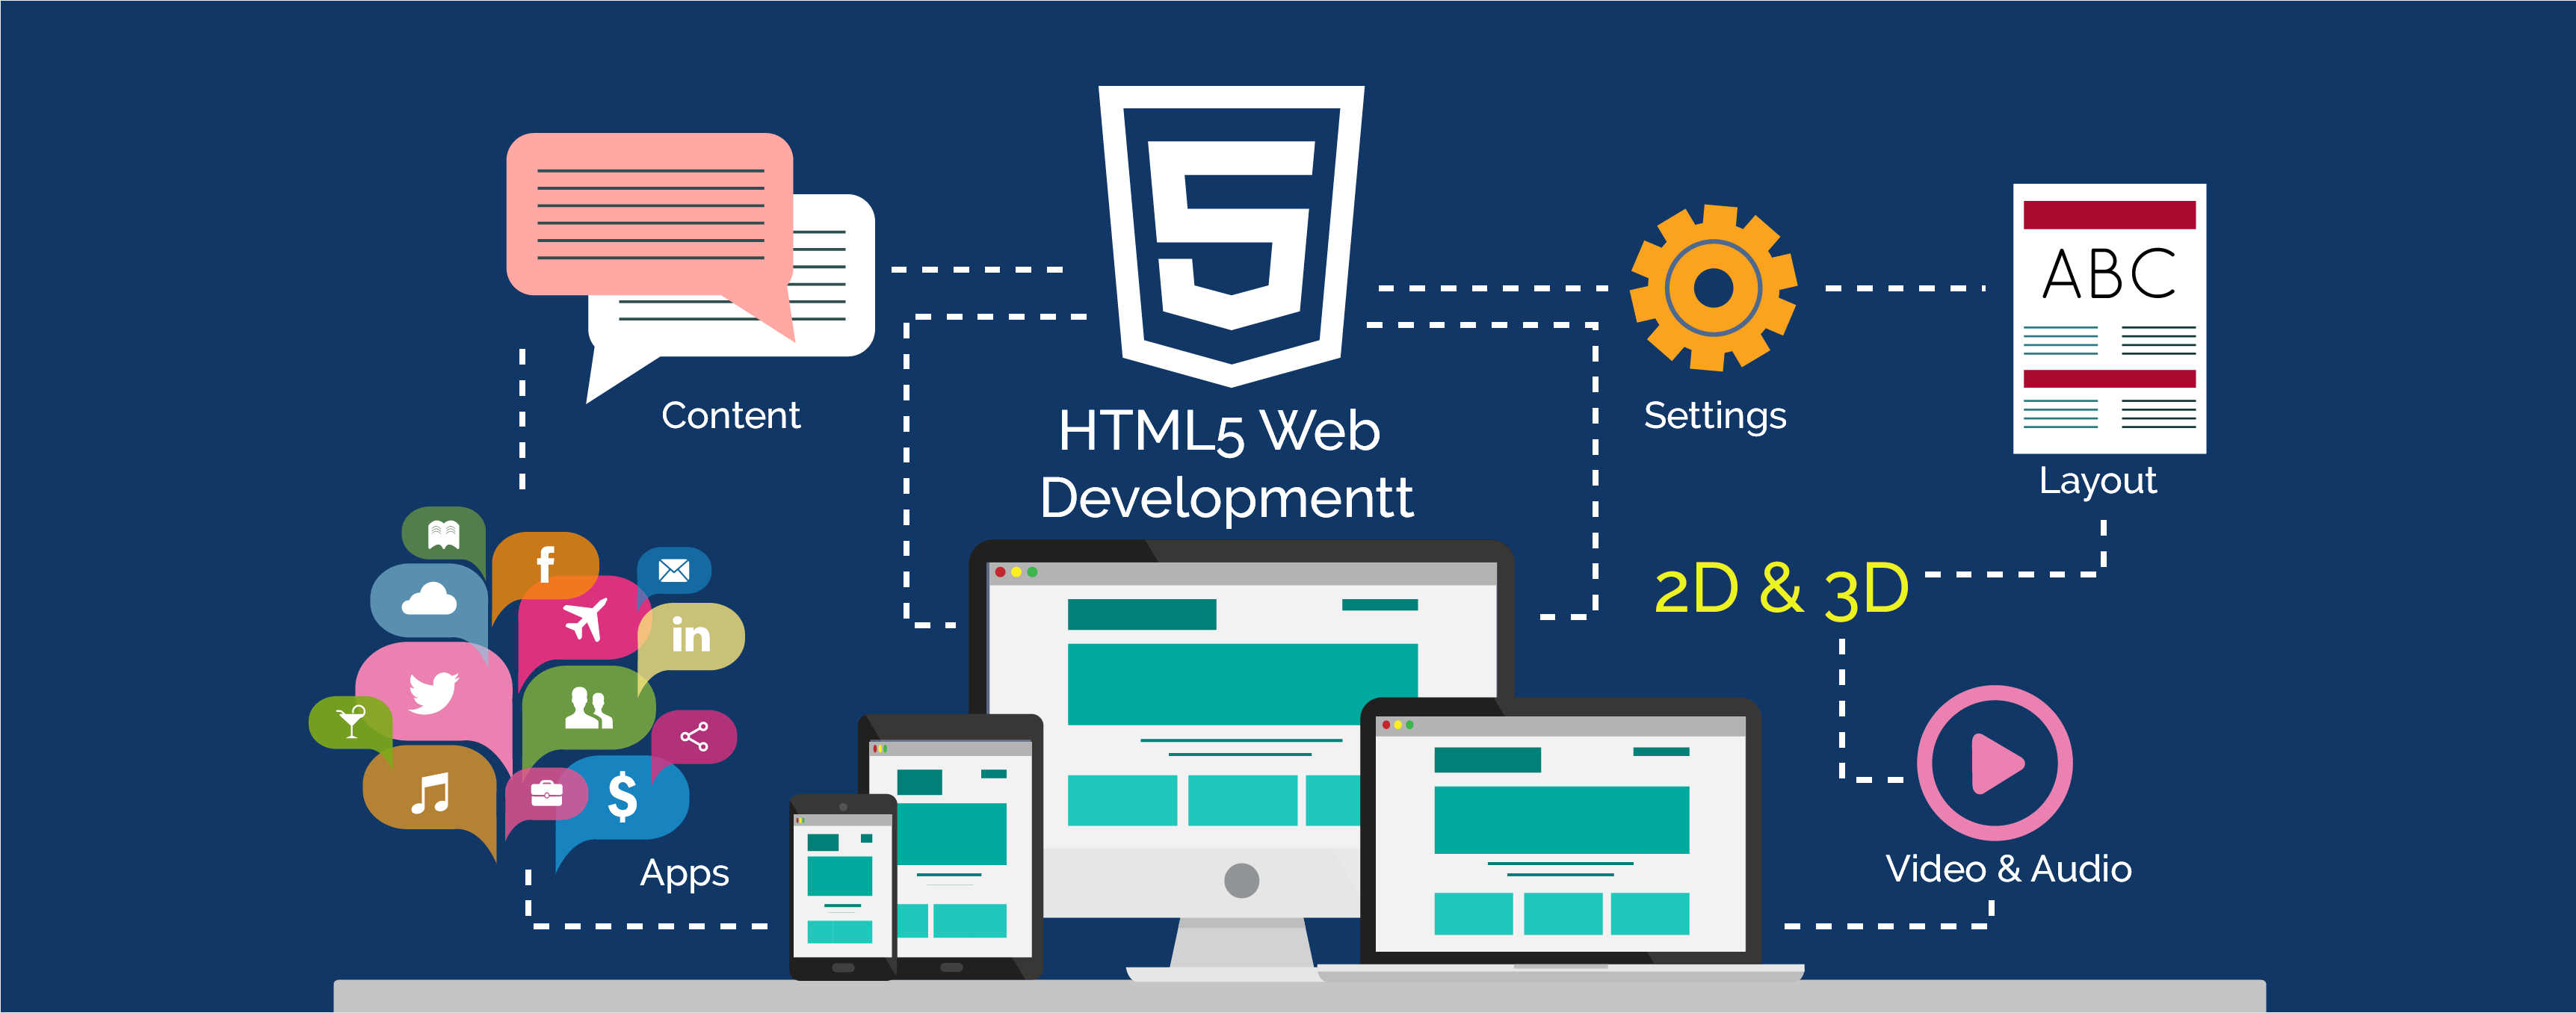 HTML5 Web Development Bangalore, India